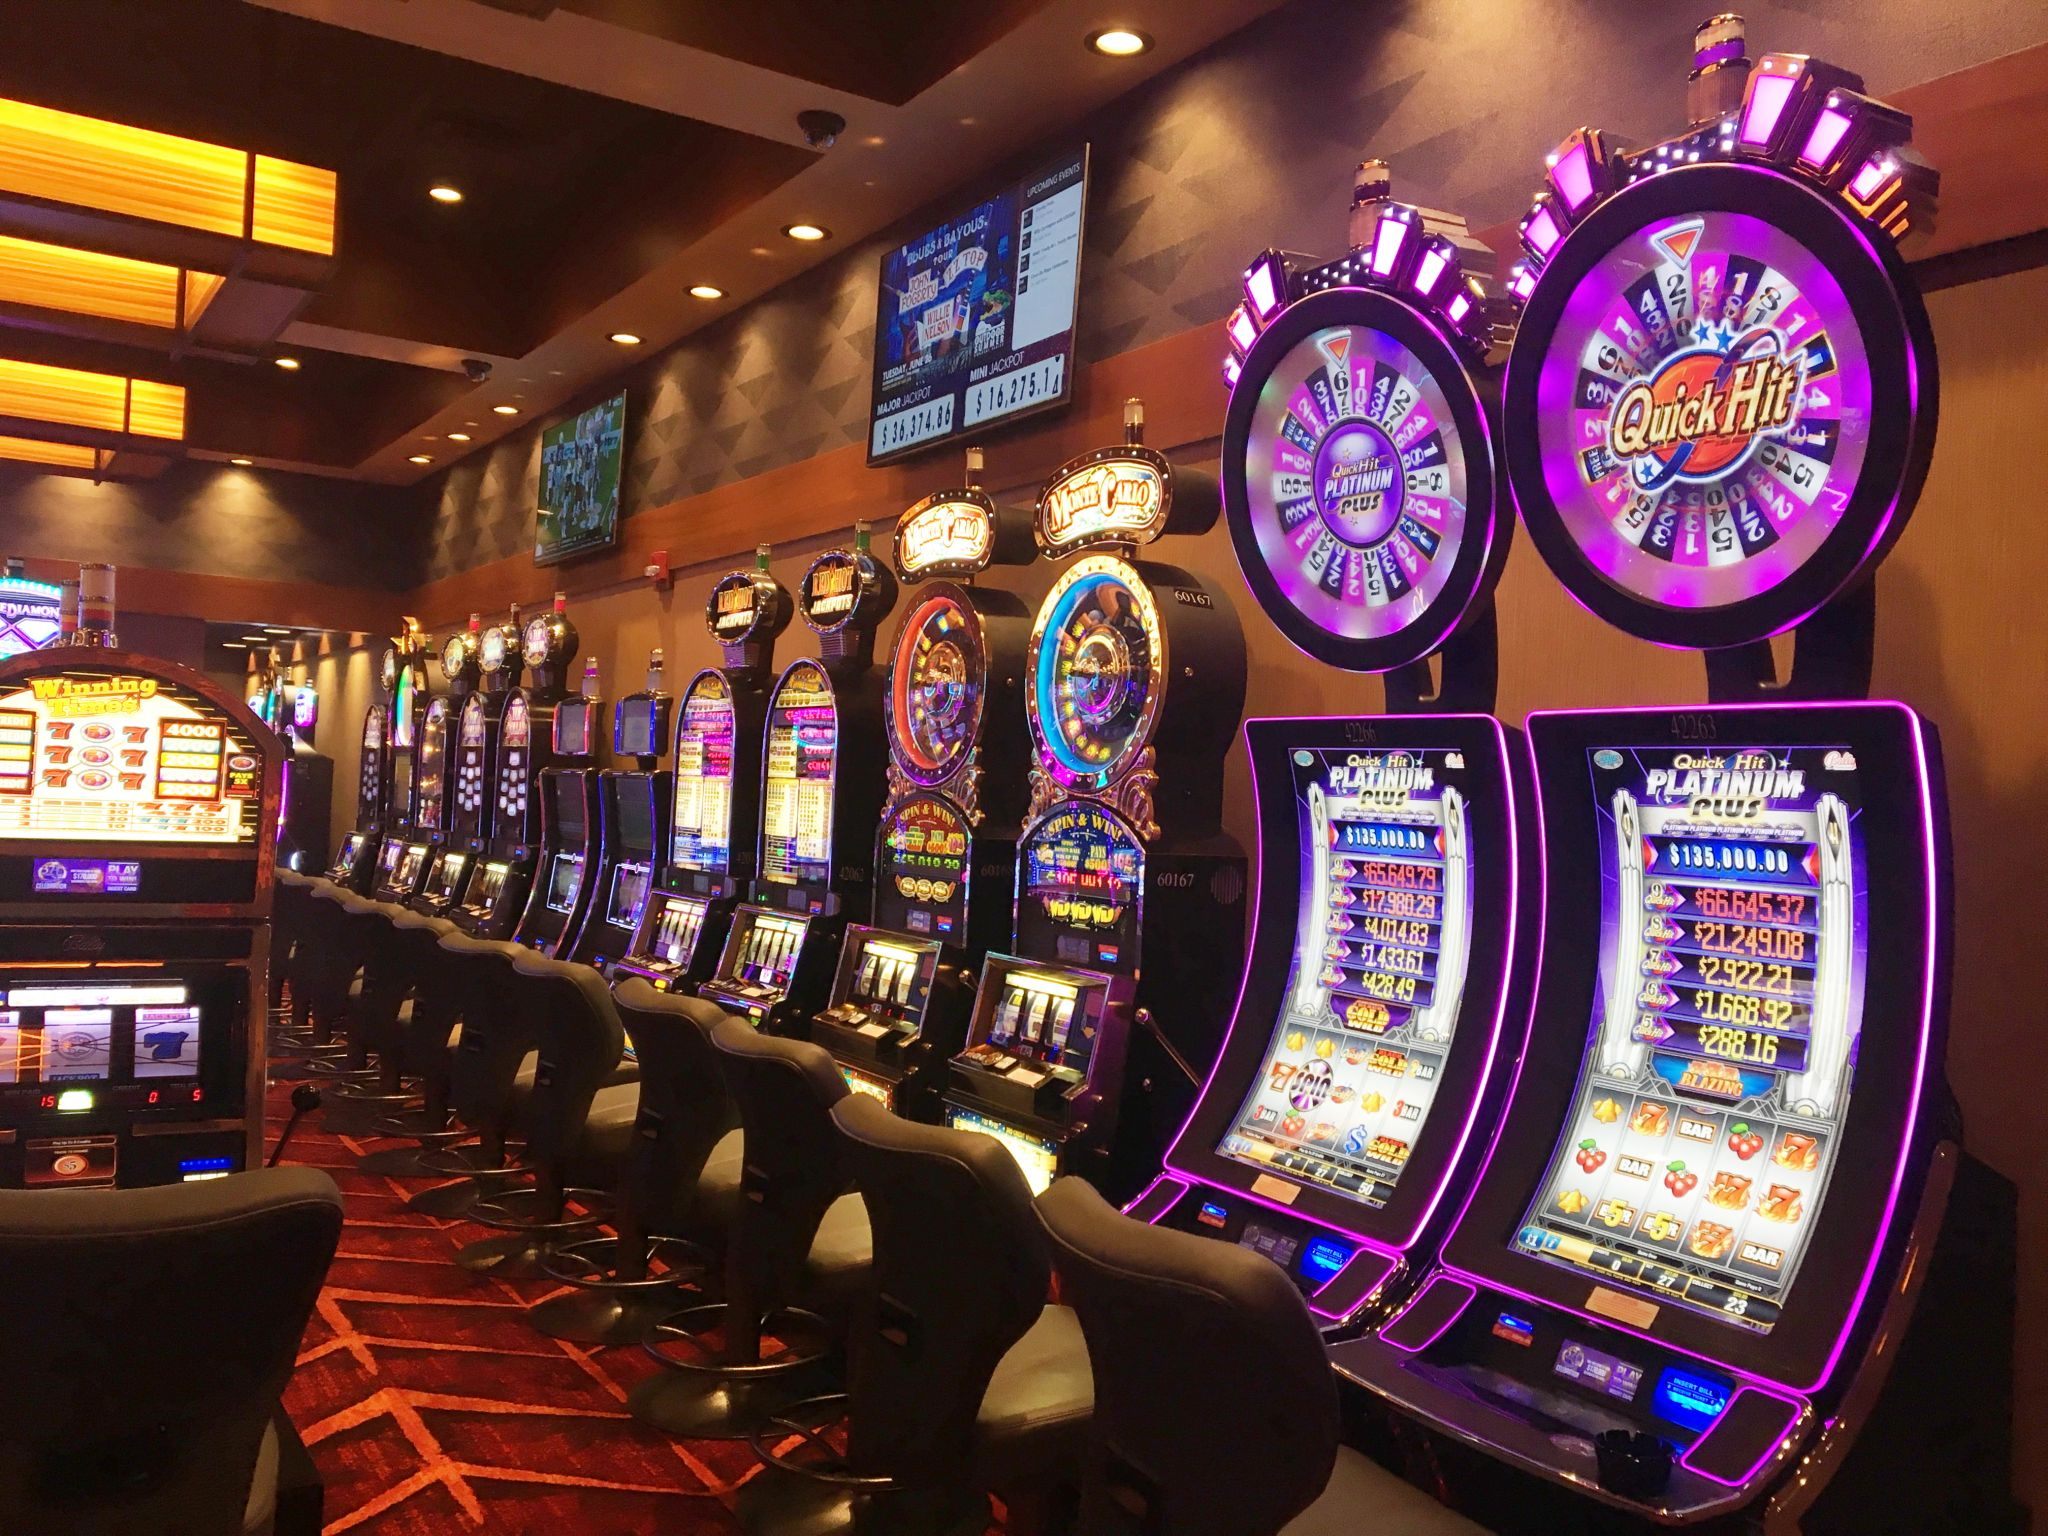 Soaring eagle casino location casino cubed promotions for signup